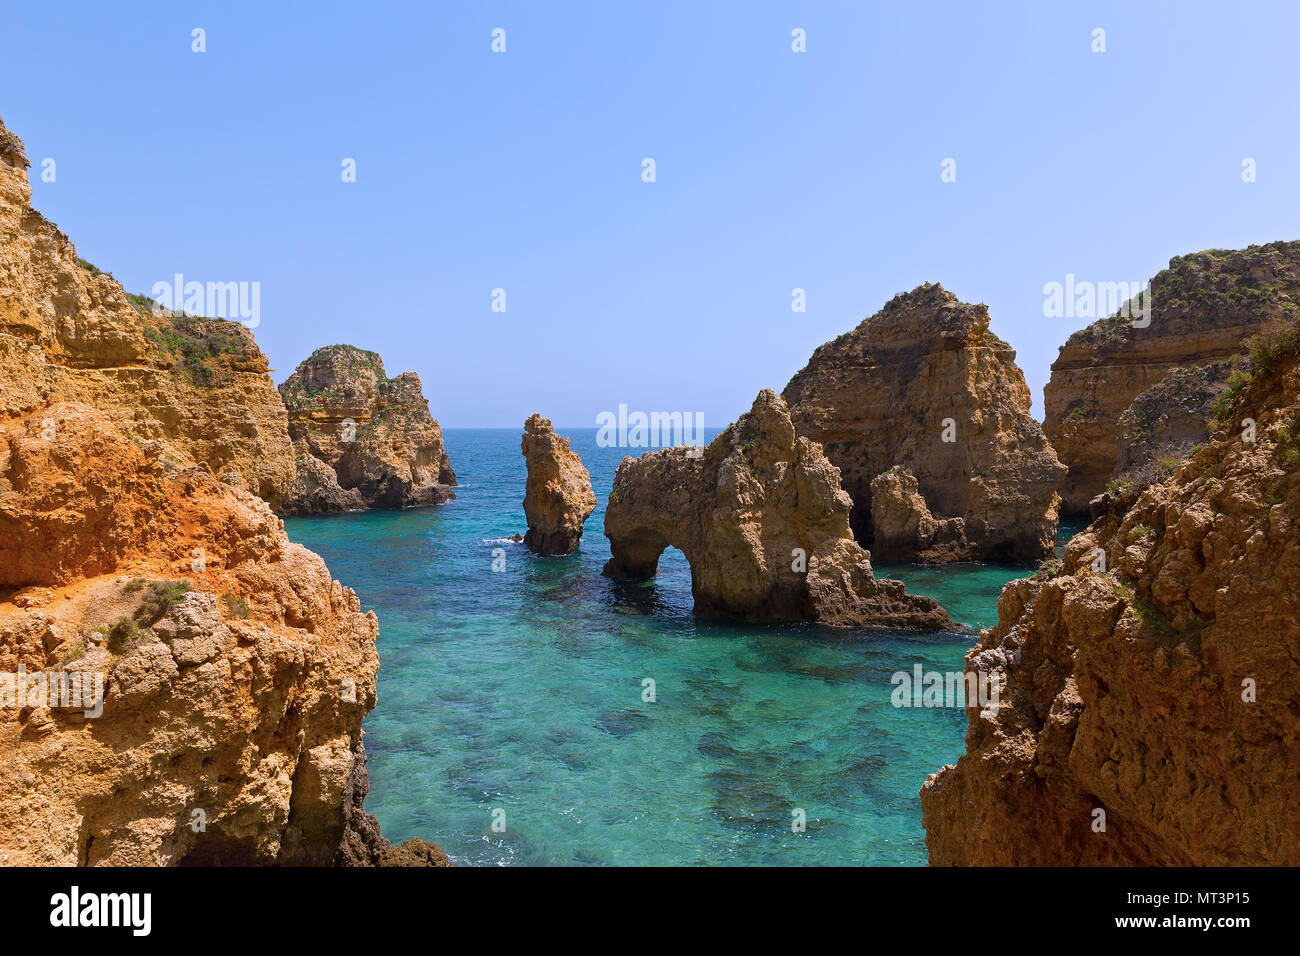 Rocky cliffs and grottoes in Algarve, Portugal. Cliffs and turquoise sea waters on a warm spring morning. Stock Photo